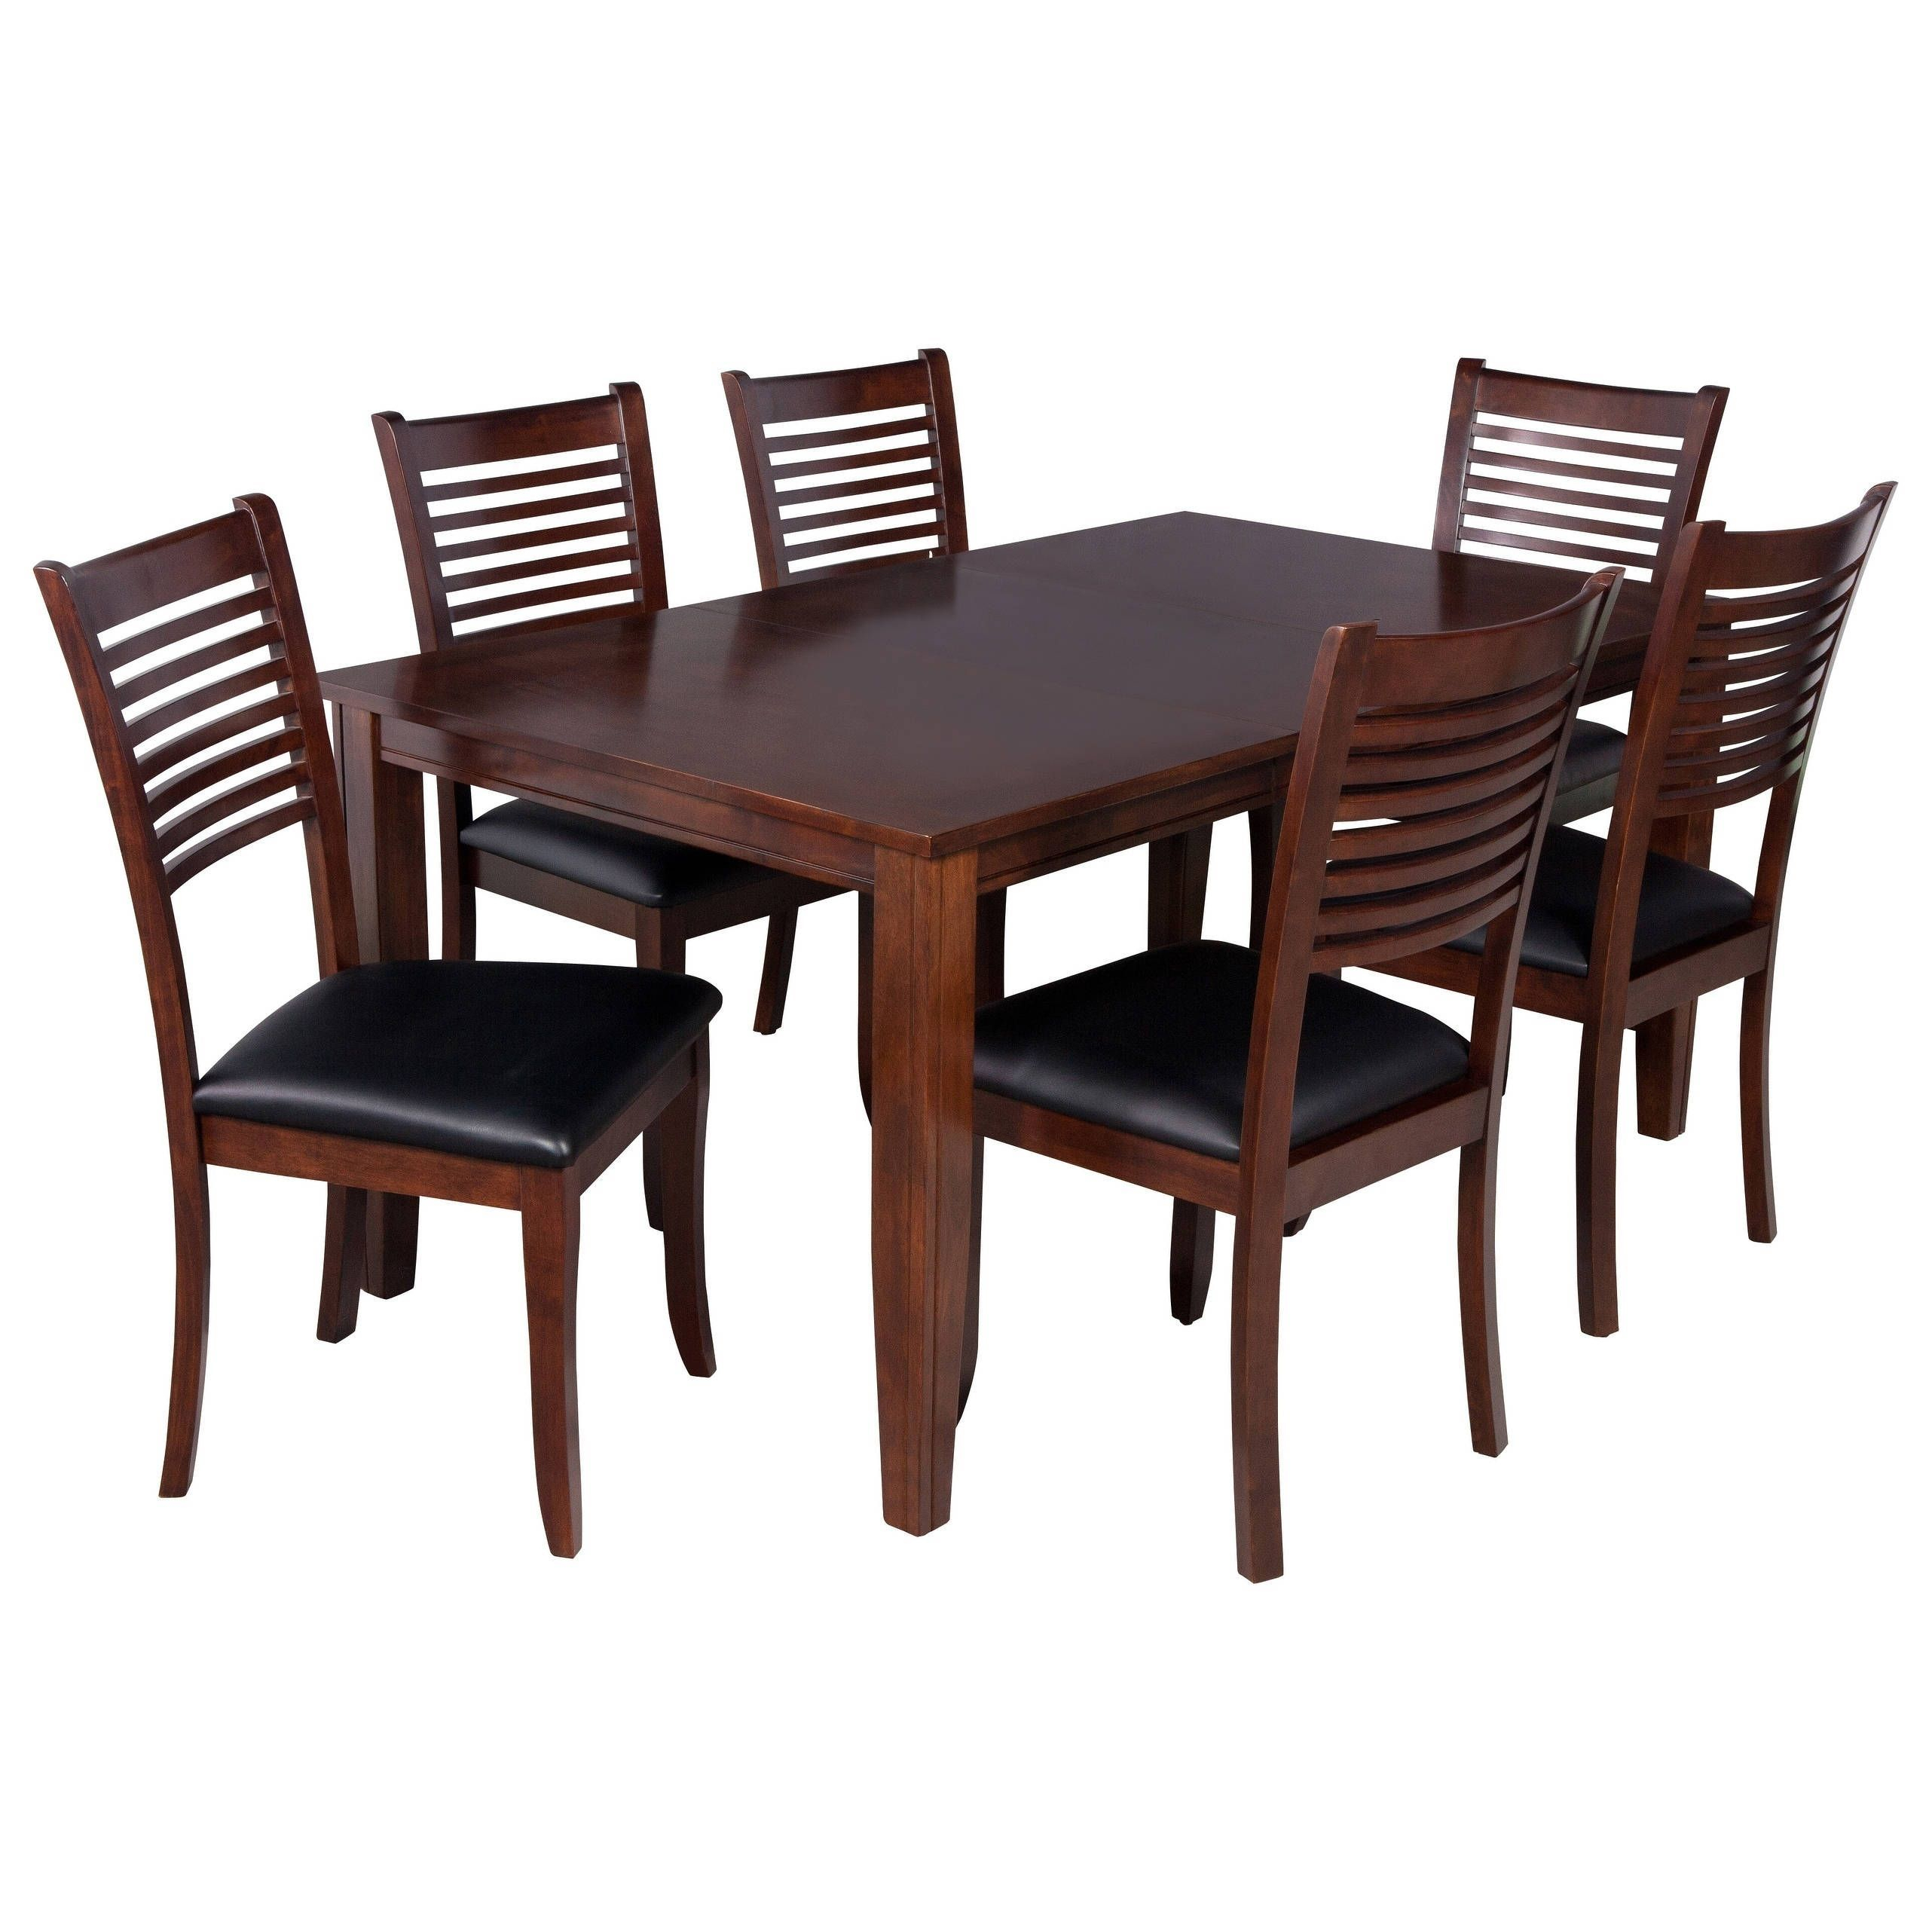 "Ttp Furnish 7 Piece Solid Wood Dining Set ""aden"", Modern Kitchen Pertaining To Newest Adan 5 Piece Solid Wood Dining Sets (Set Of 5) (Image 16 of 20)"